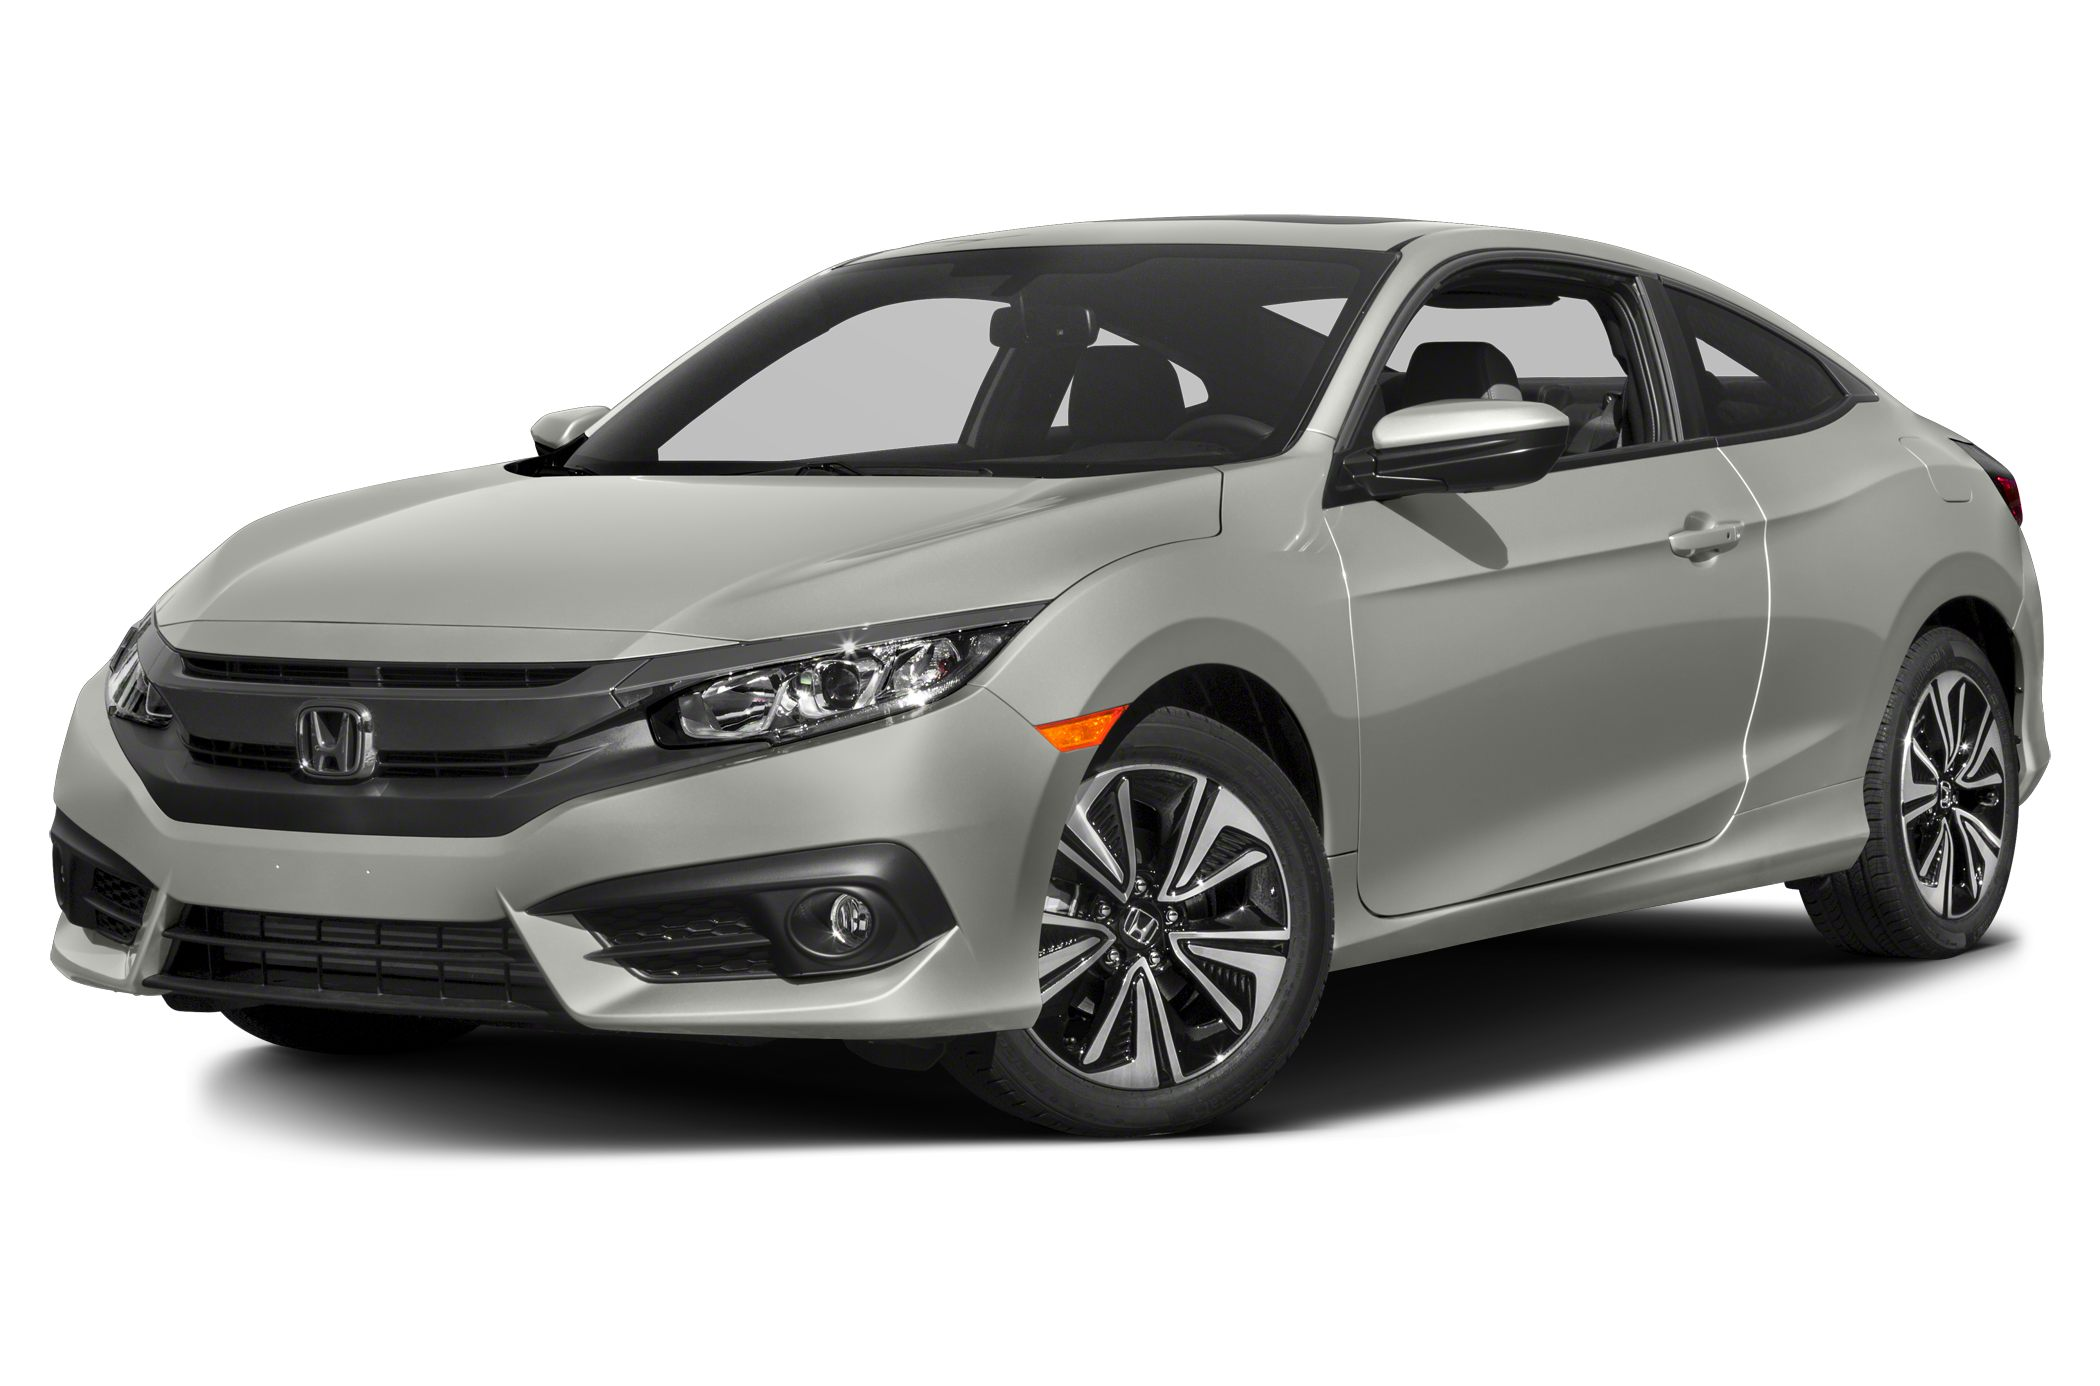 2016 Honda Civic EX-L You Win Turbo Buy a new Honda from Diamond Valley Honda in Hemet and obtai